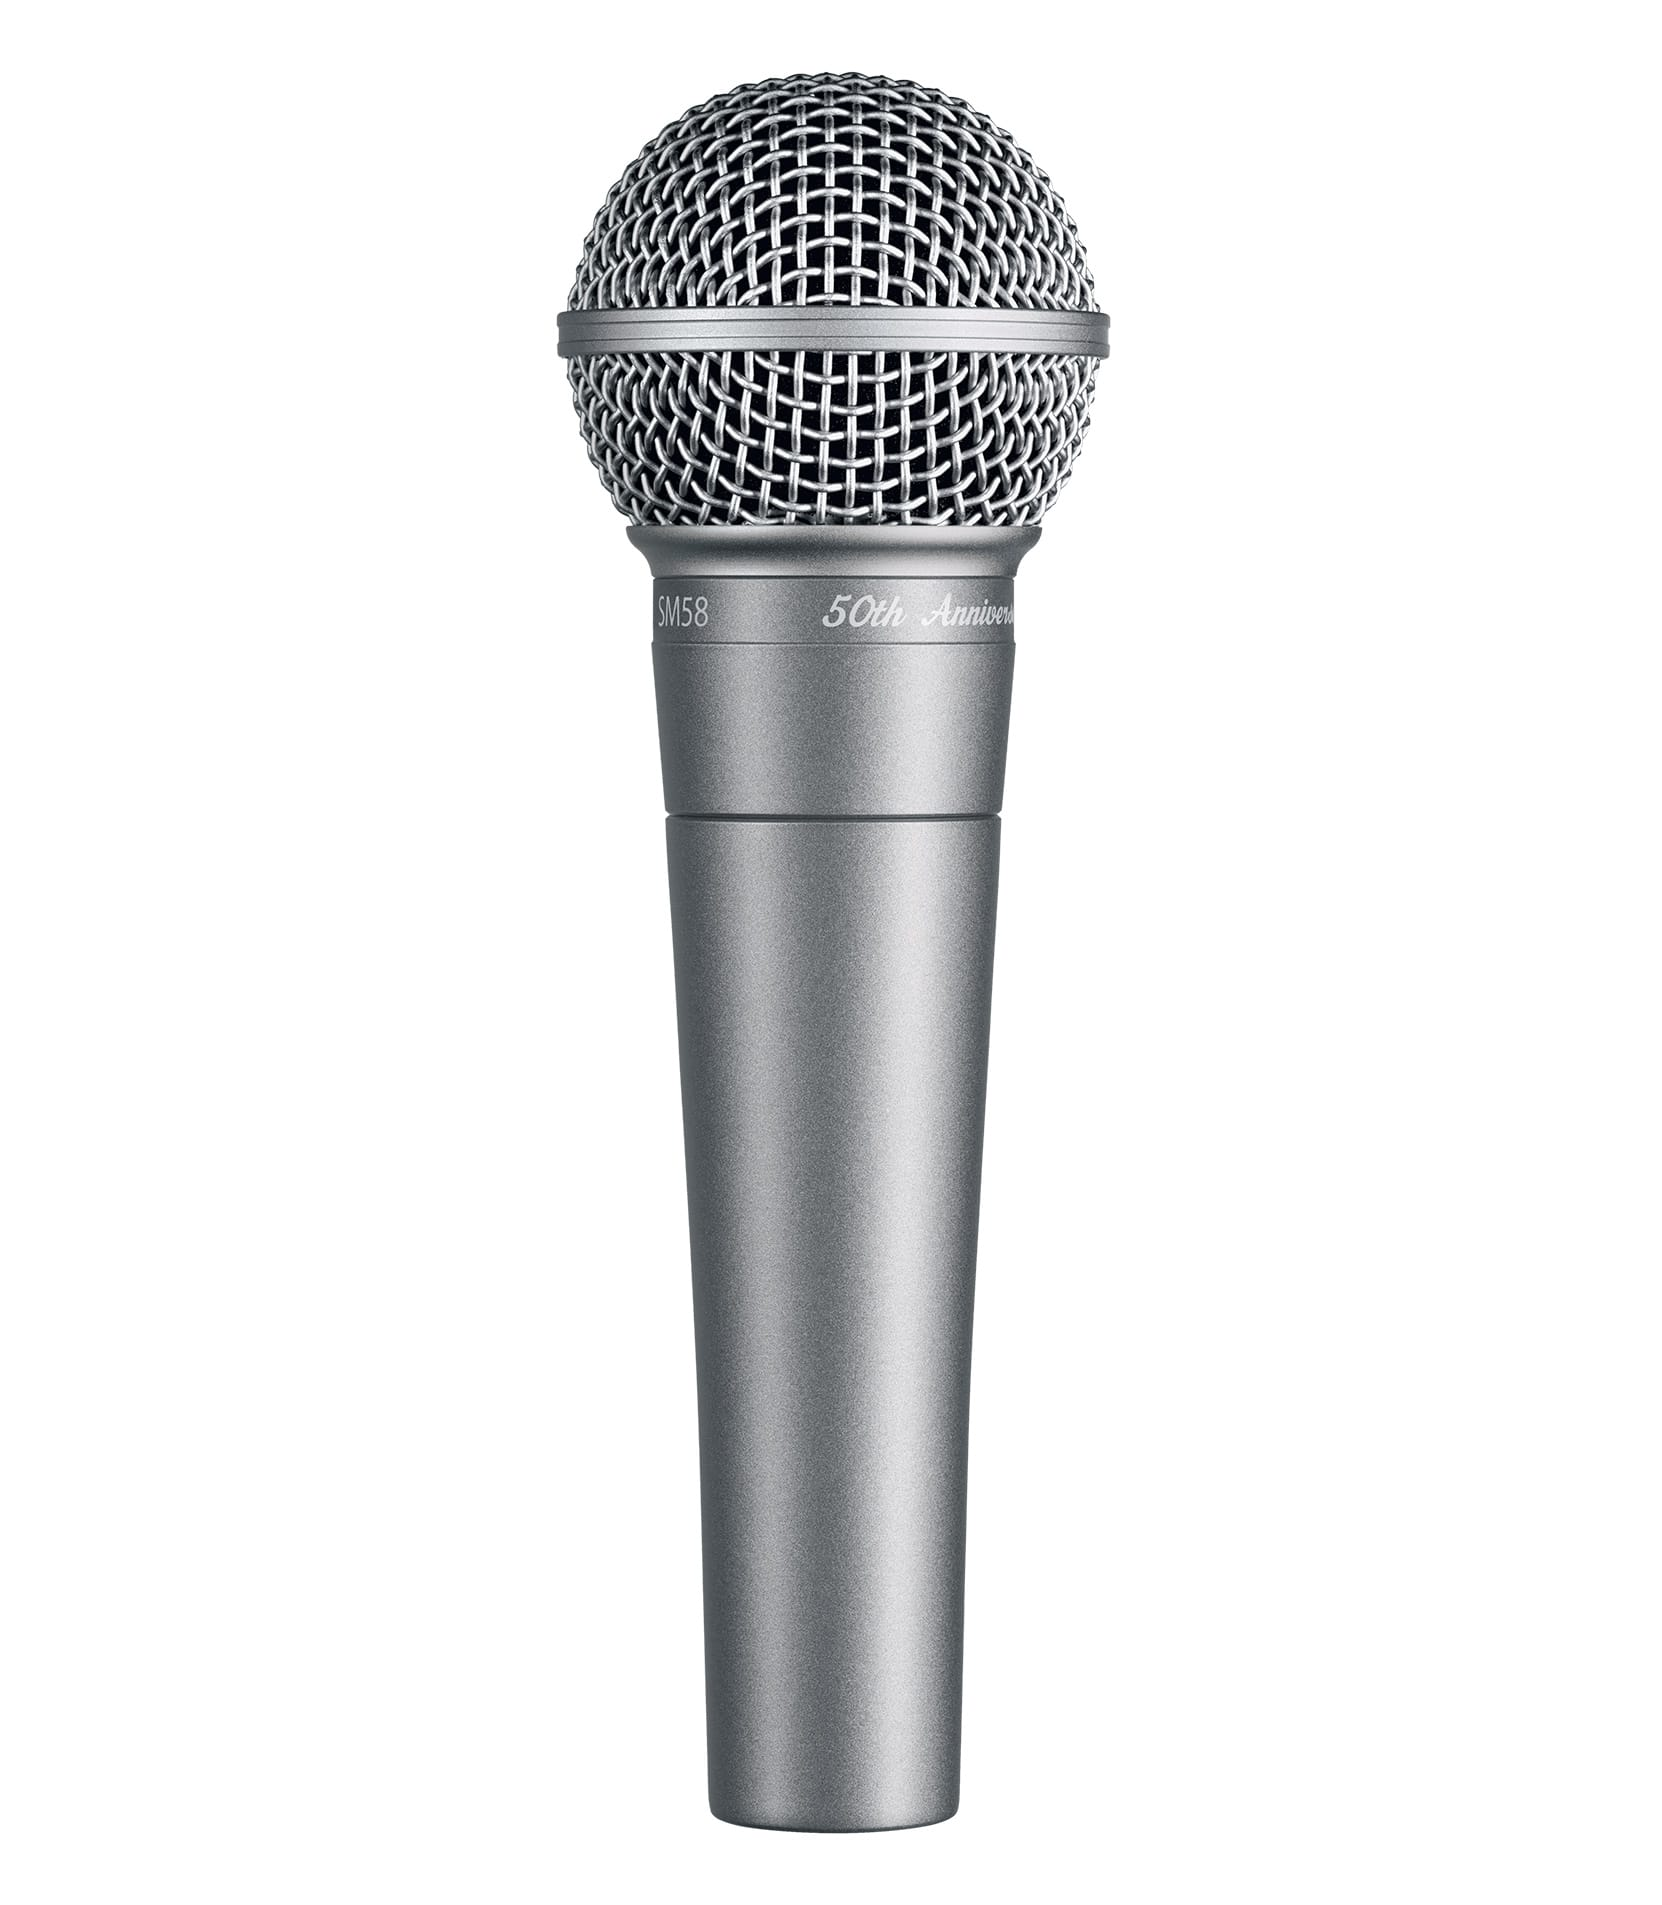 buy microphones online best microphones price recording equipments for sale. Black Bedroom Furniture Sets. Home Design Ideas